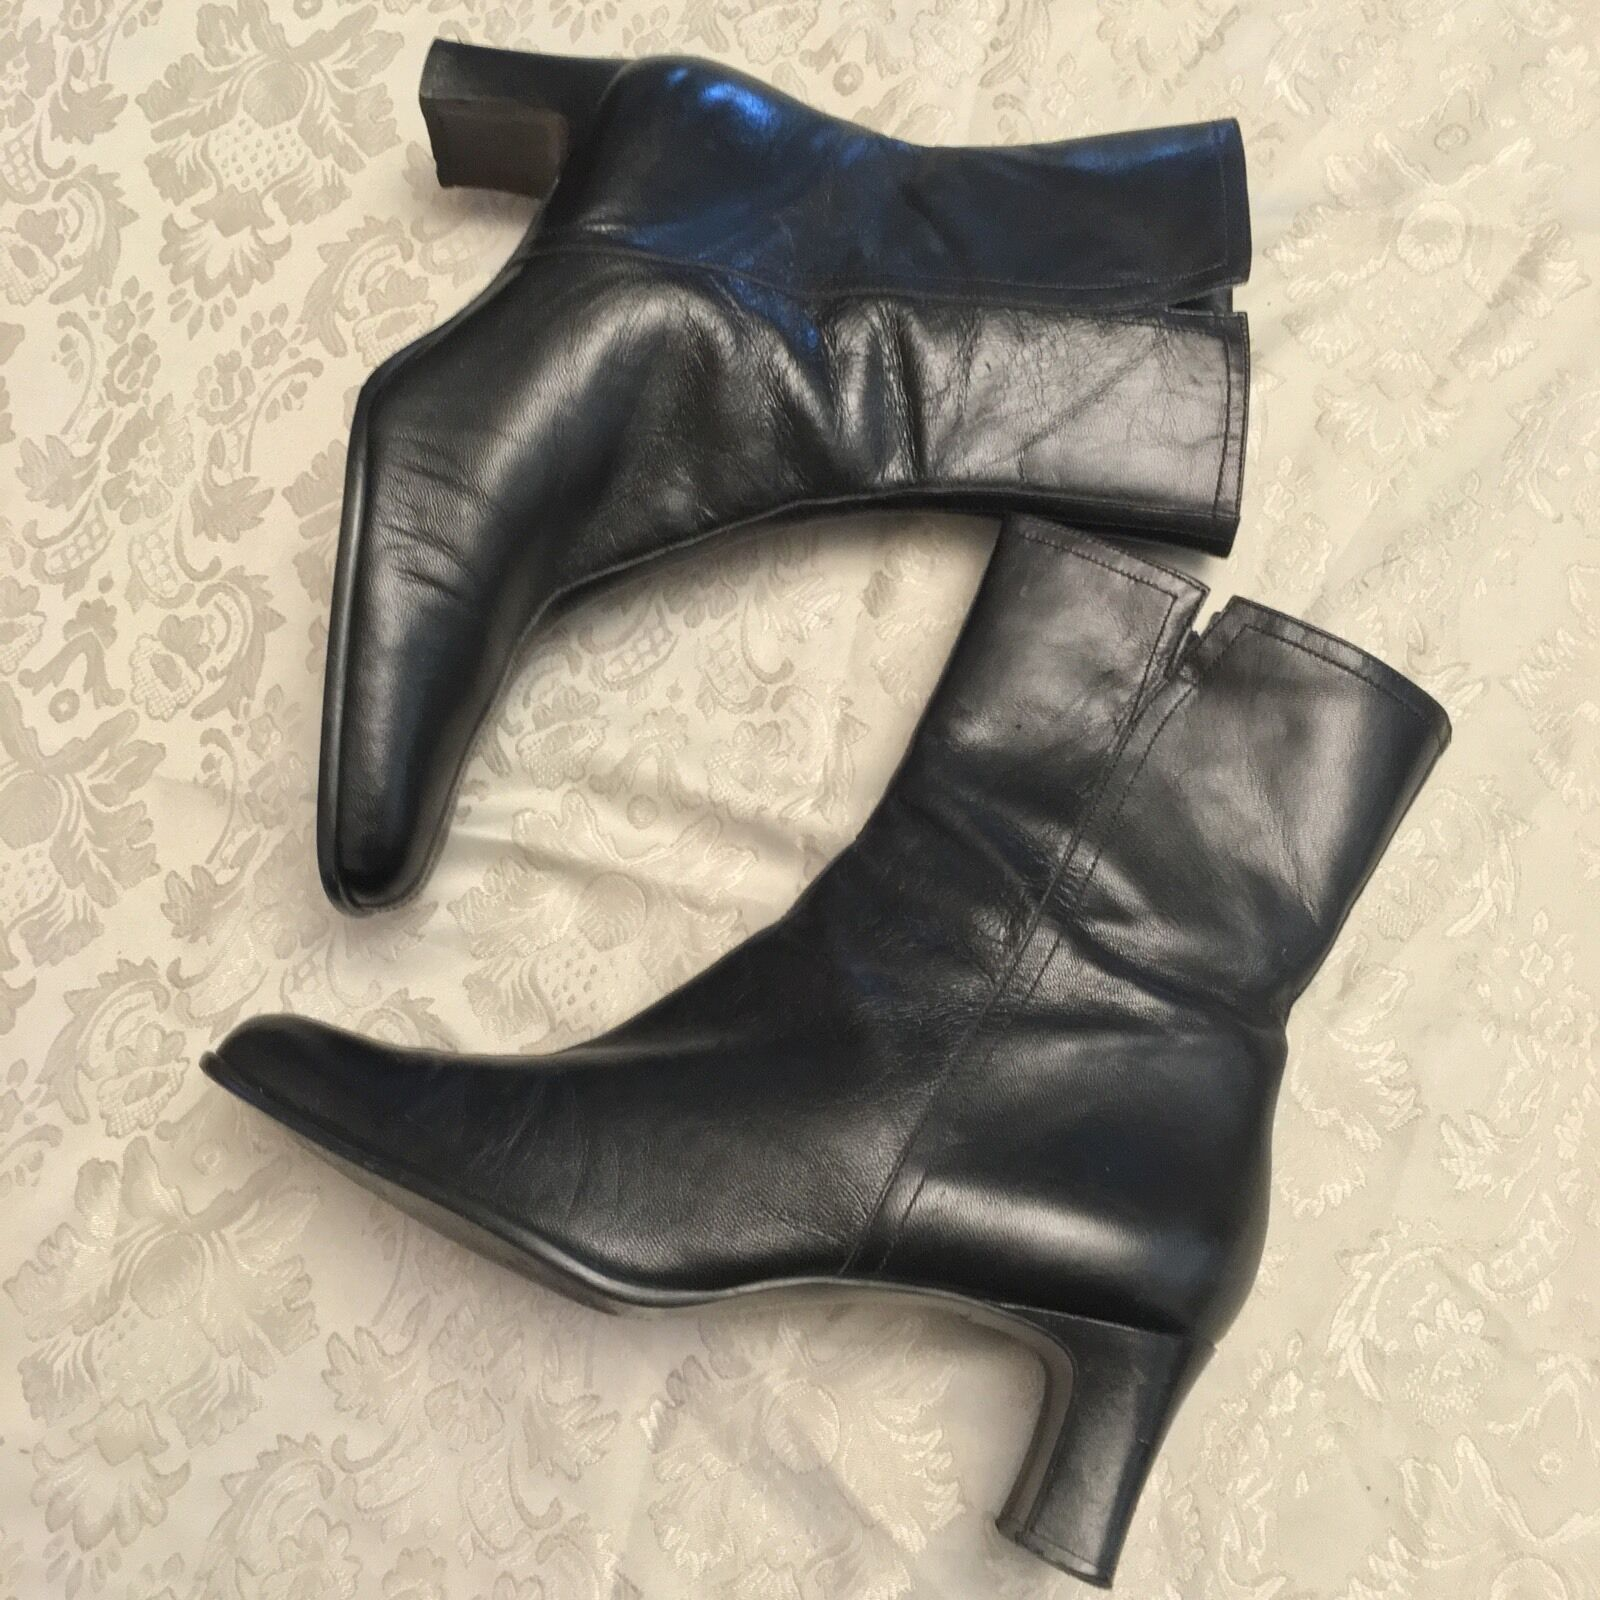 ANDREA COLLECTION Women's Boots Black size 10 Zip Made in Brazil Goat Leather